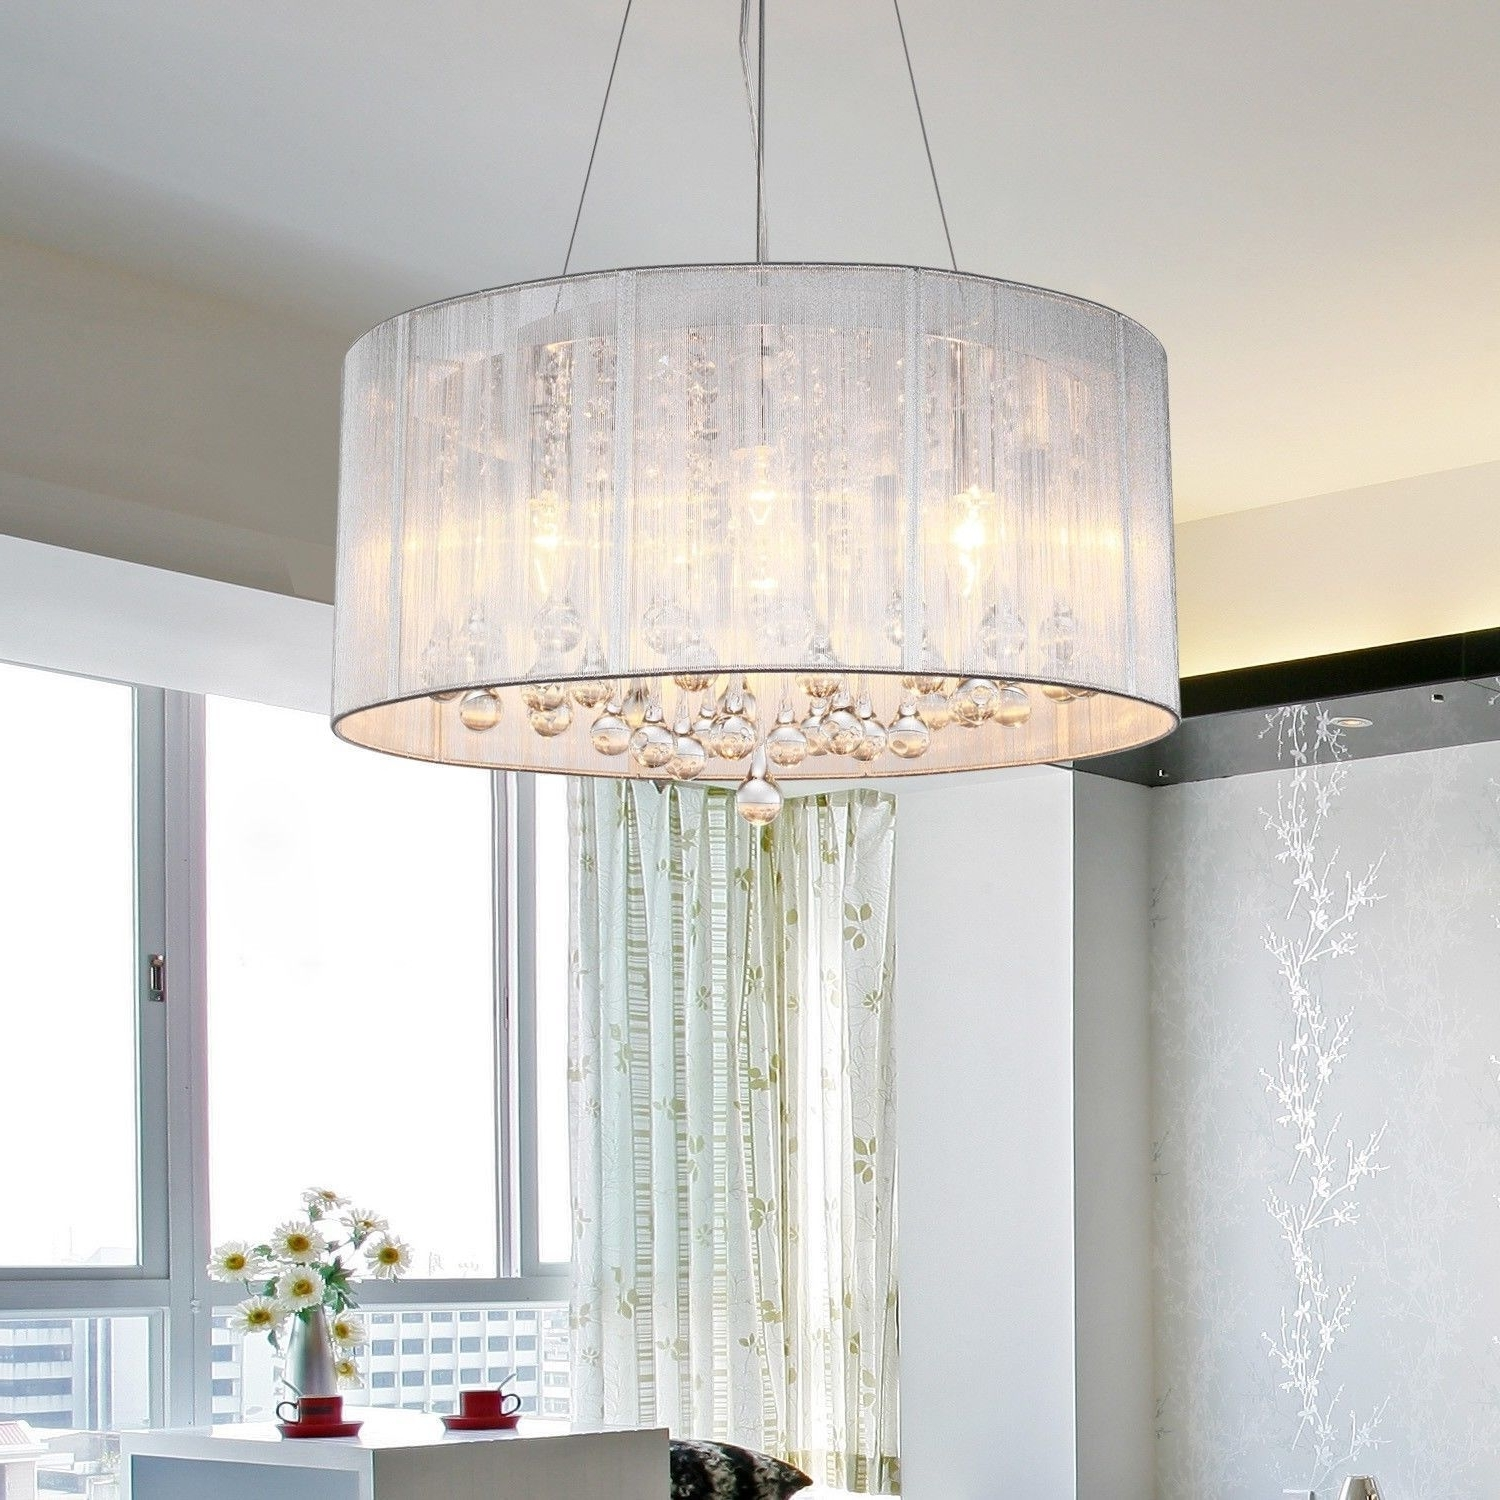 How To Choose A Chandelier Lampshade – Goodworksfurniture Regarding Latest Lampshade Chandeliers (View 3 of 15)